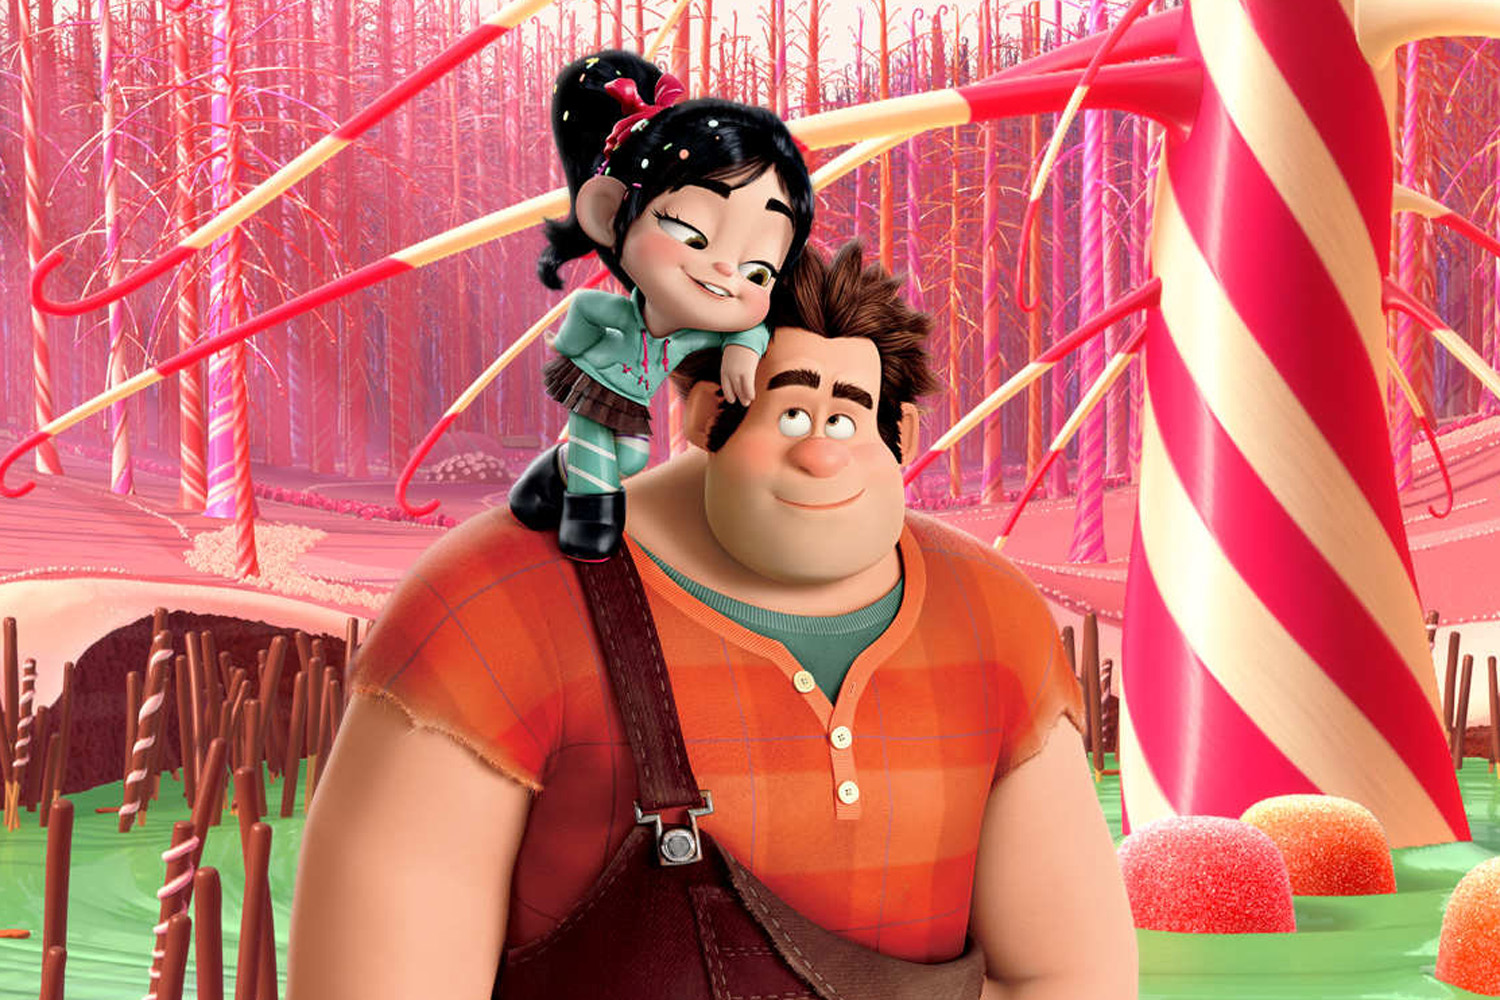 MOVIE JOURNAL: Wreck-It Ralph and Take Shelter